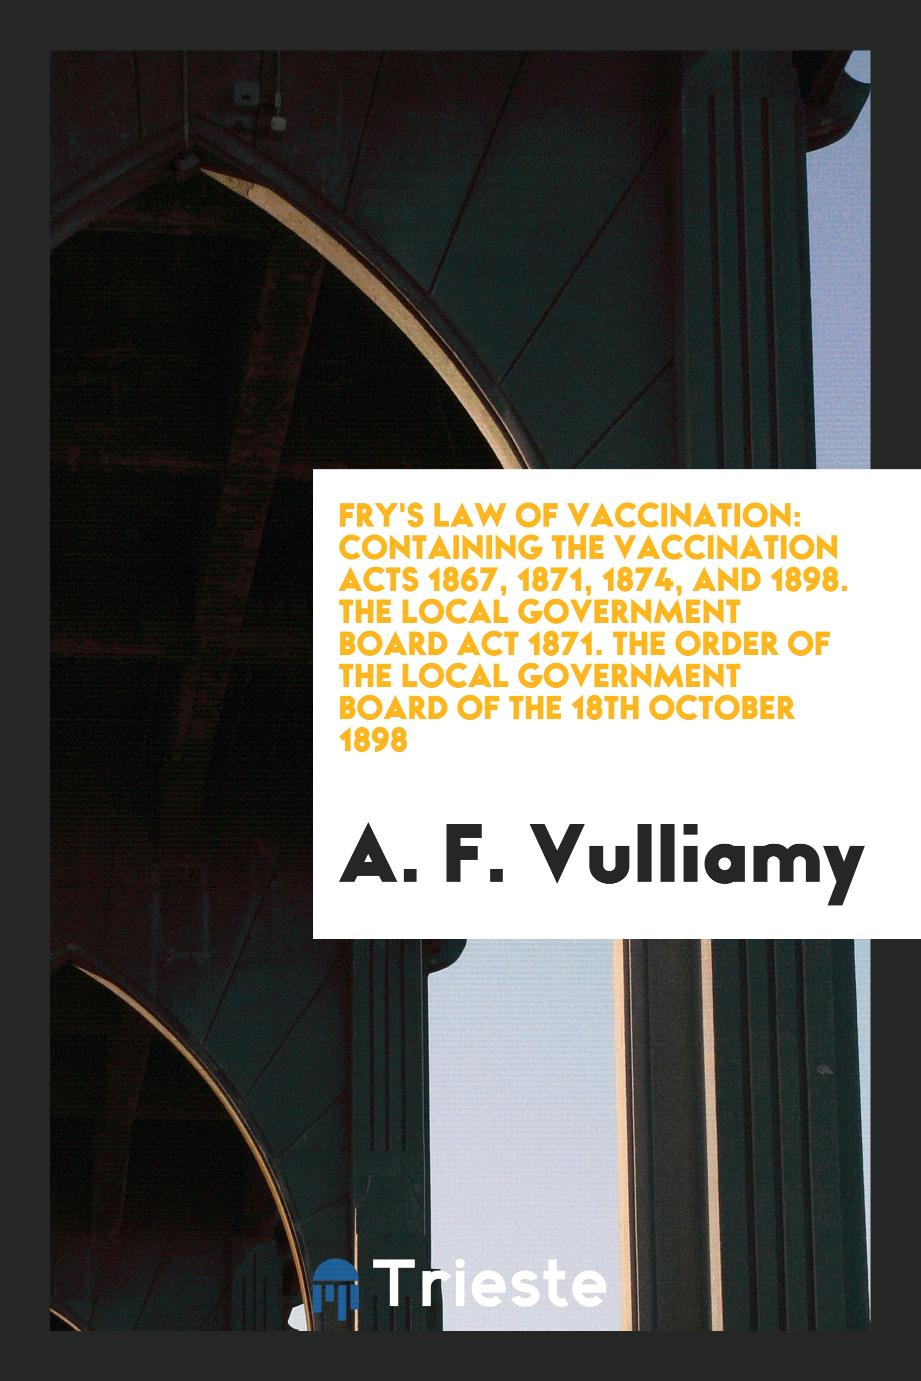 Fry's Law of Vaccination: Containing the Vaccination Acts 1867, 1871, 1874, and 1898. The Local Government Board Act 1871. The Order of the Local Government Board of the 18th October 1898